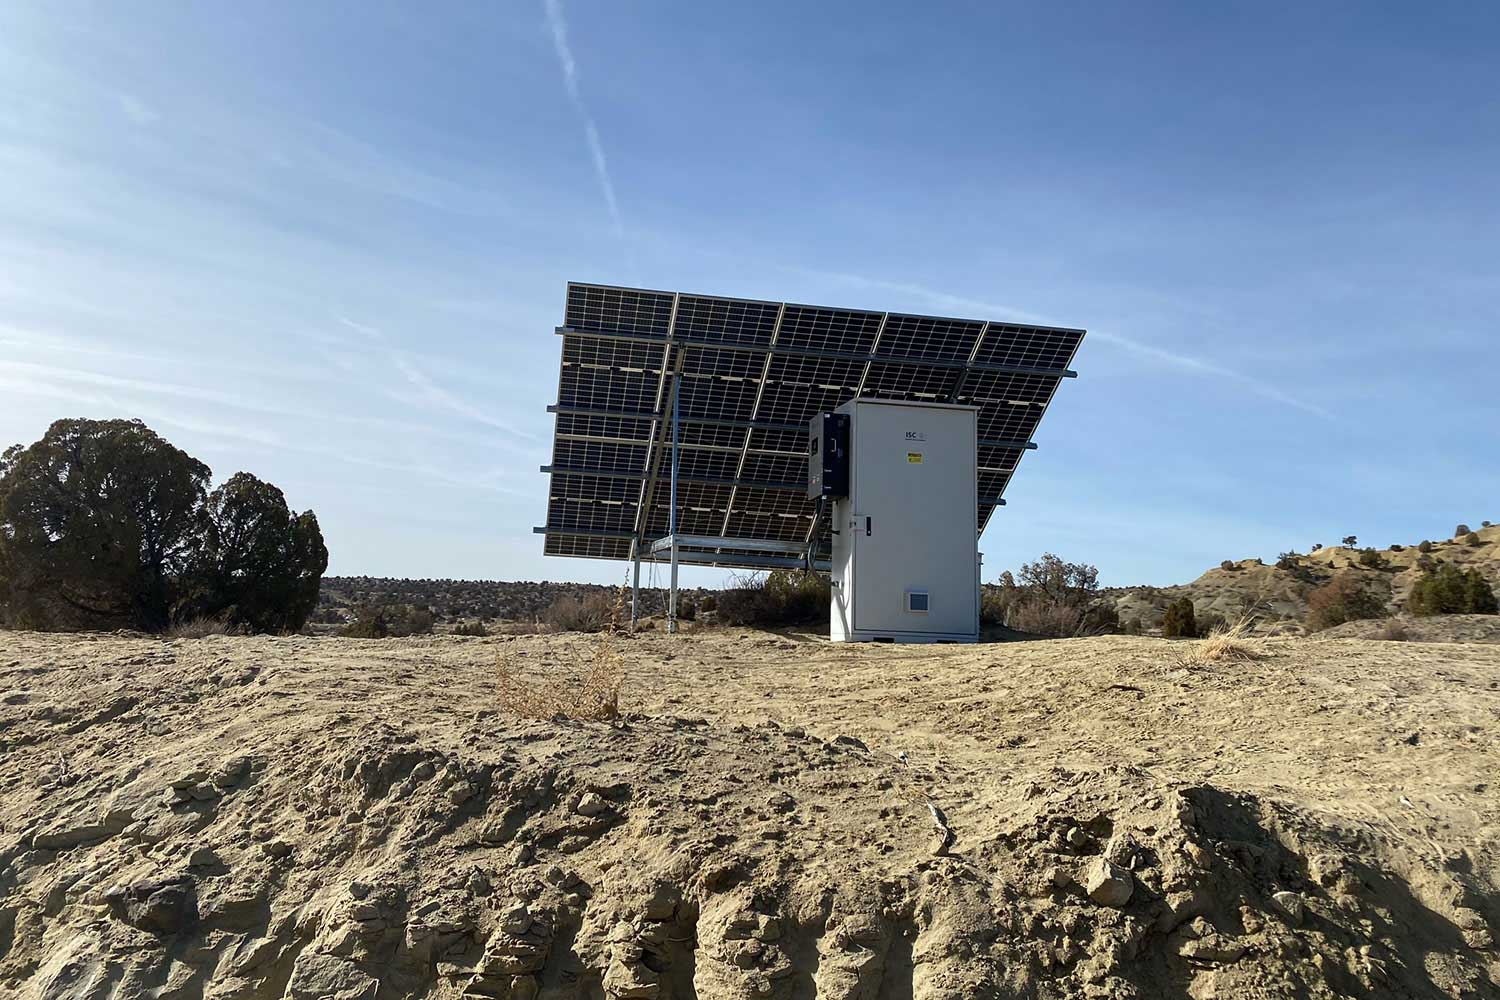 Off-grid solar power installation on the Navajo Nation by ISC